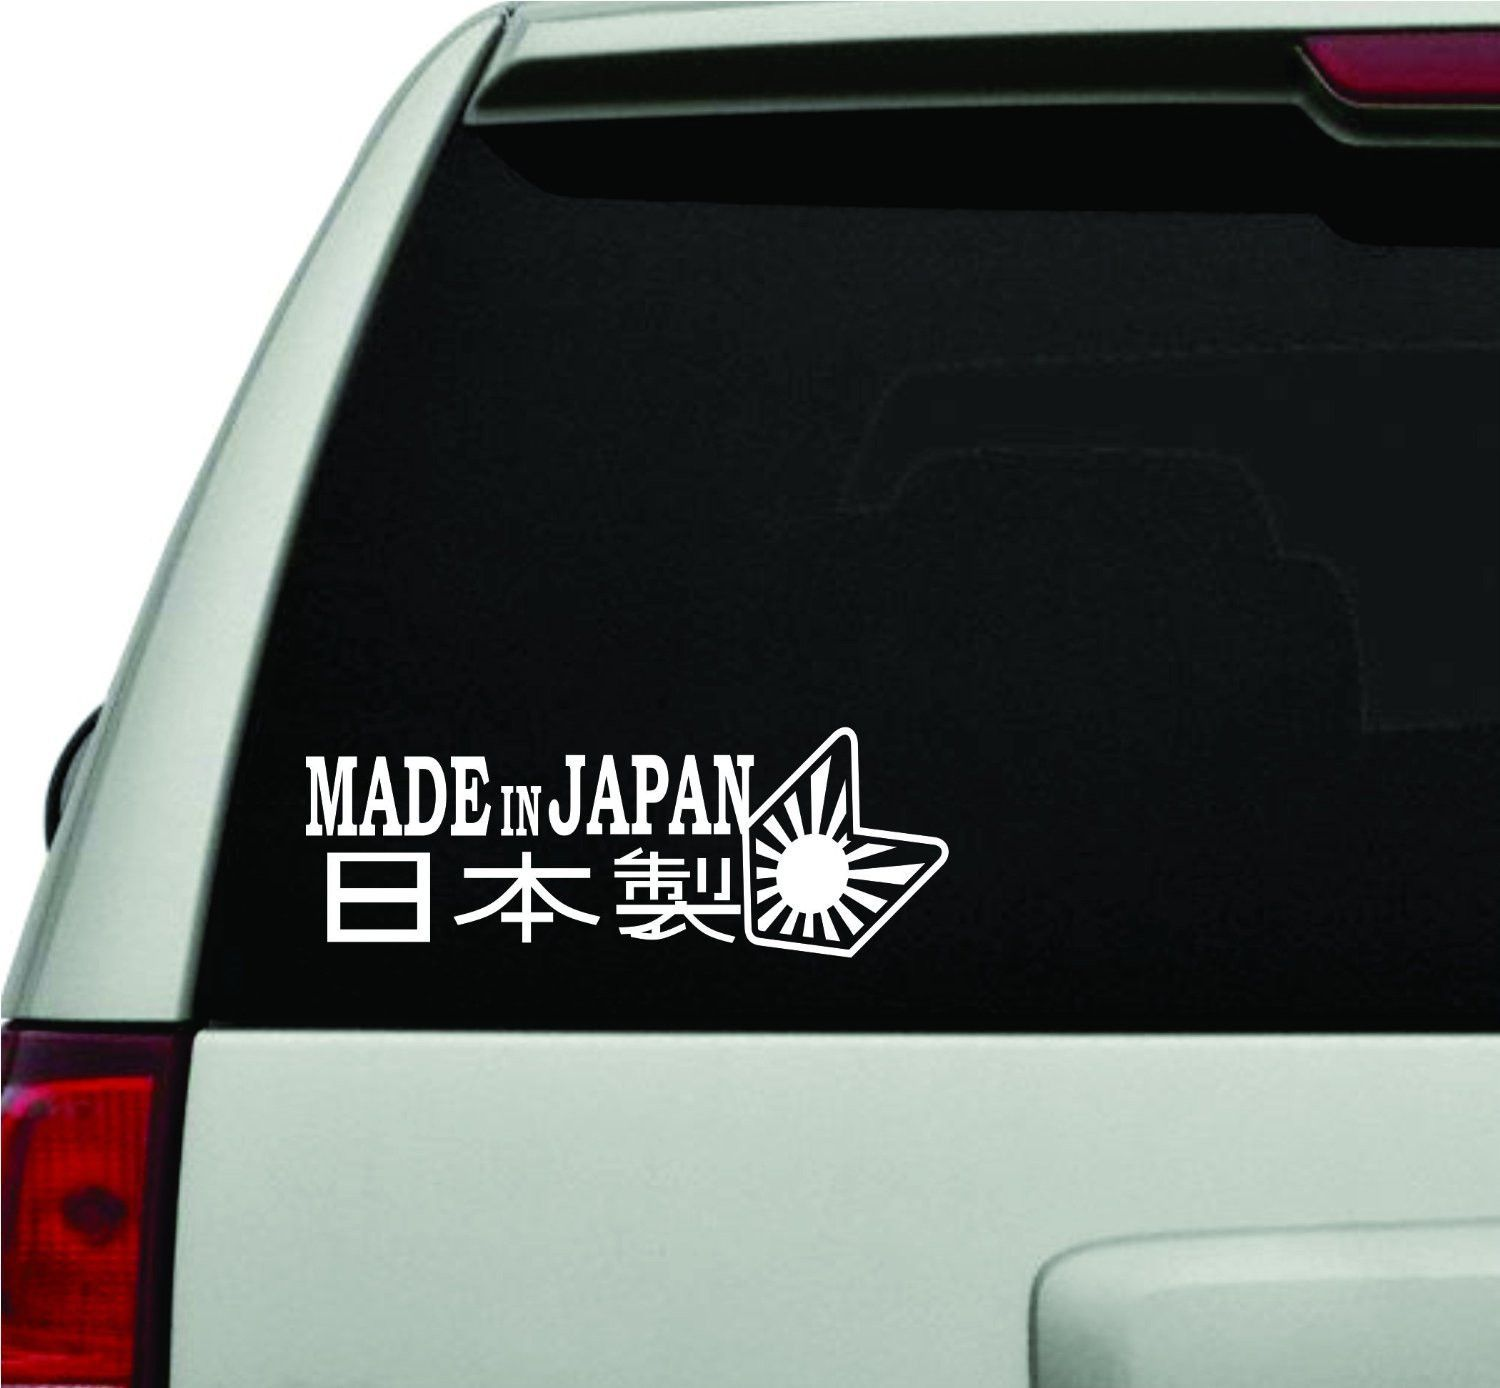 Made in japan version 101 jdm car truck window windshield lettering decal sticker